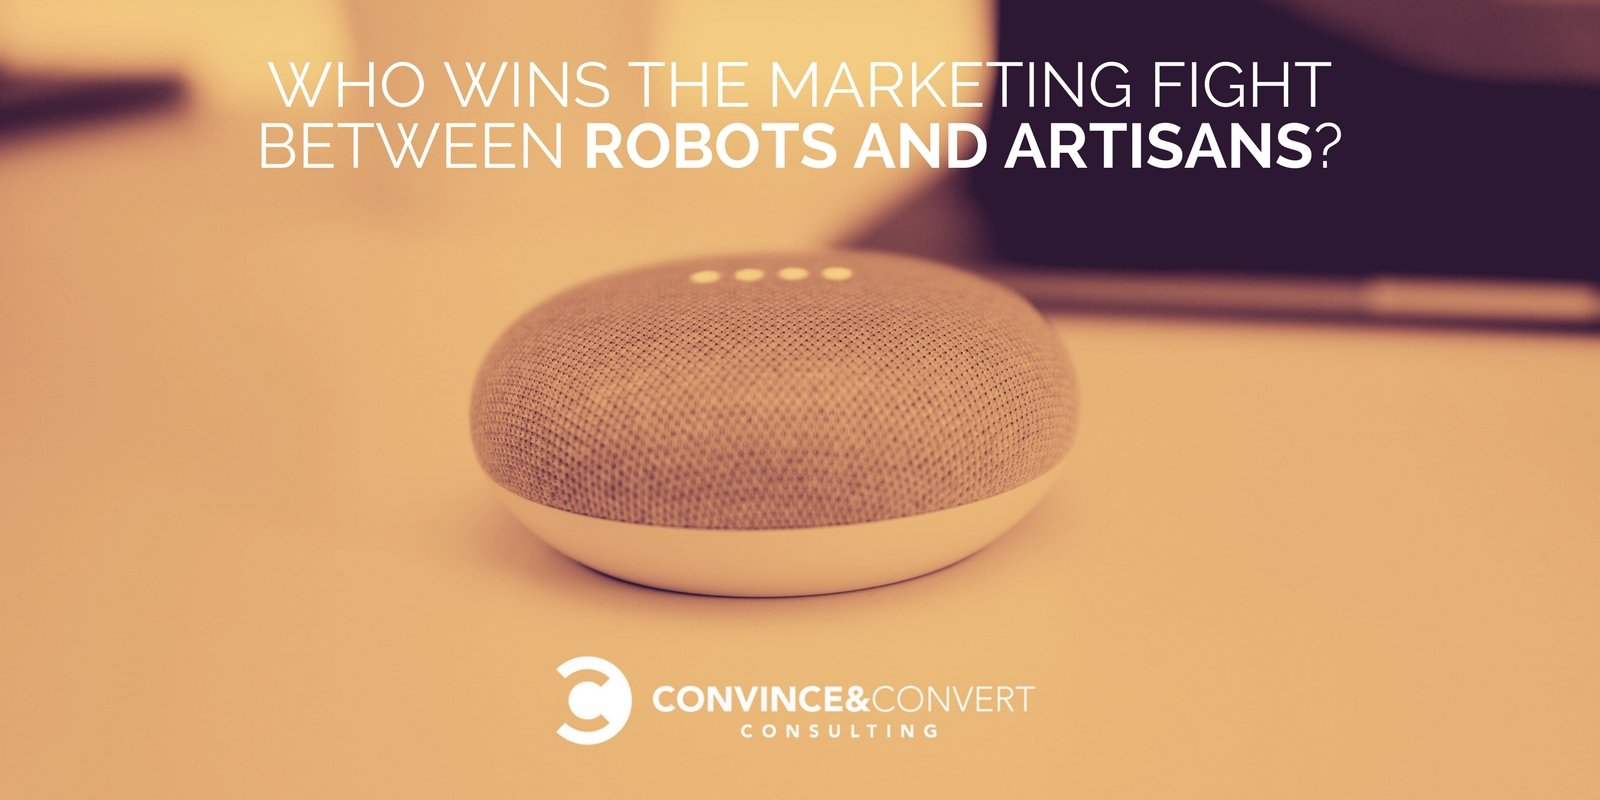 Who Wins the Marketing Fight Between Robots and Artisans